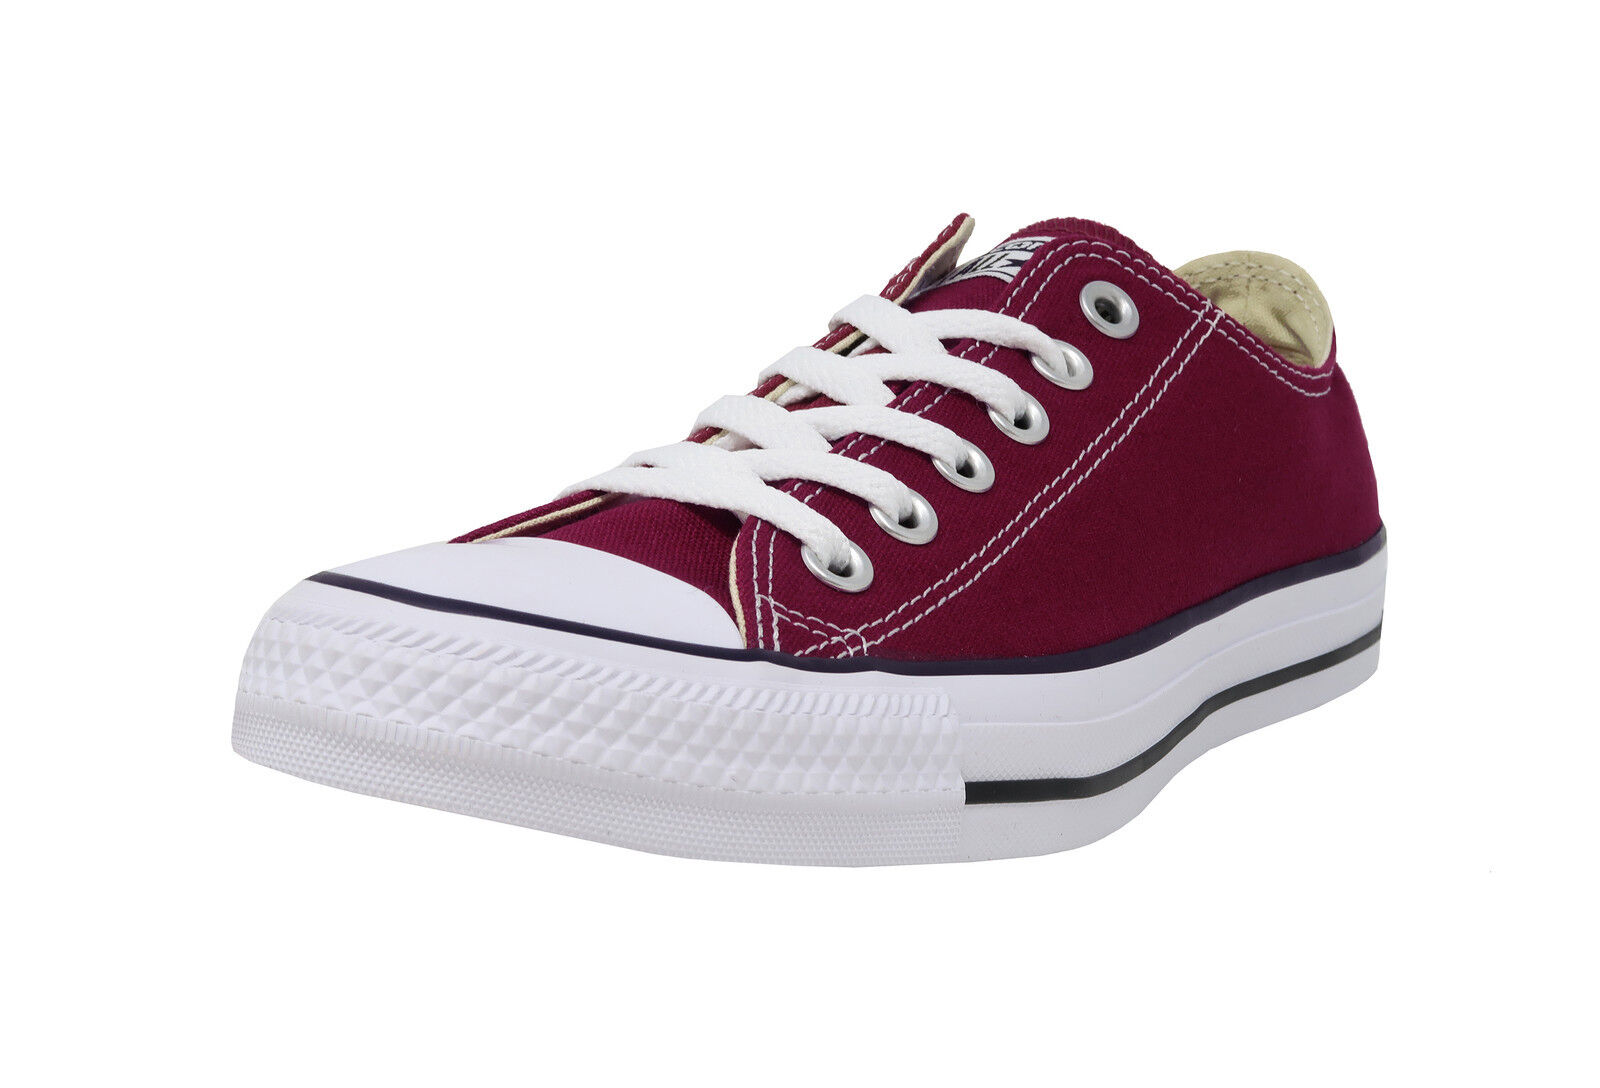 2508acfbaf7f Converse Chuck Taylor All Star Ox M9691 Shoes Trainers Maroon Dark ...